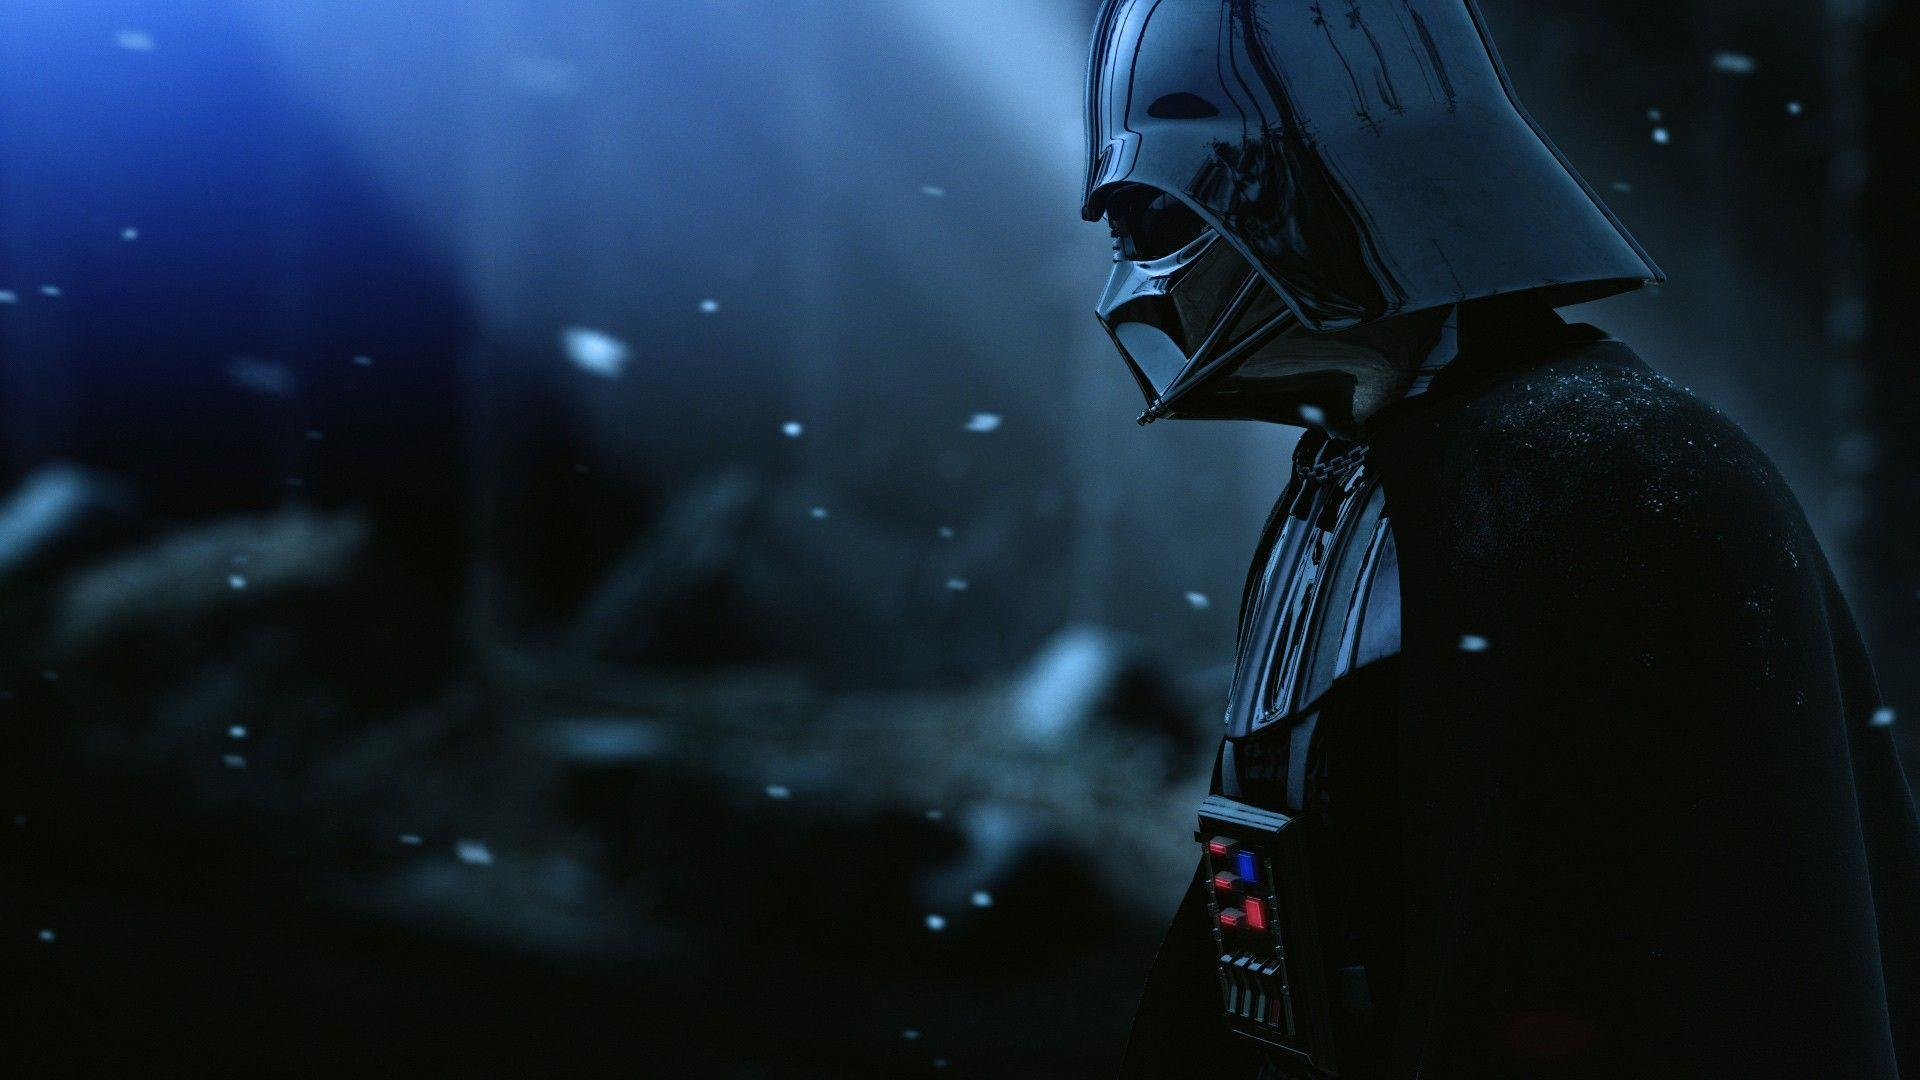 star wars wallpapers 1920x1080 wallpaper cave